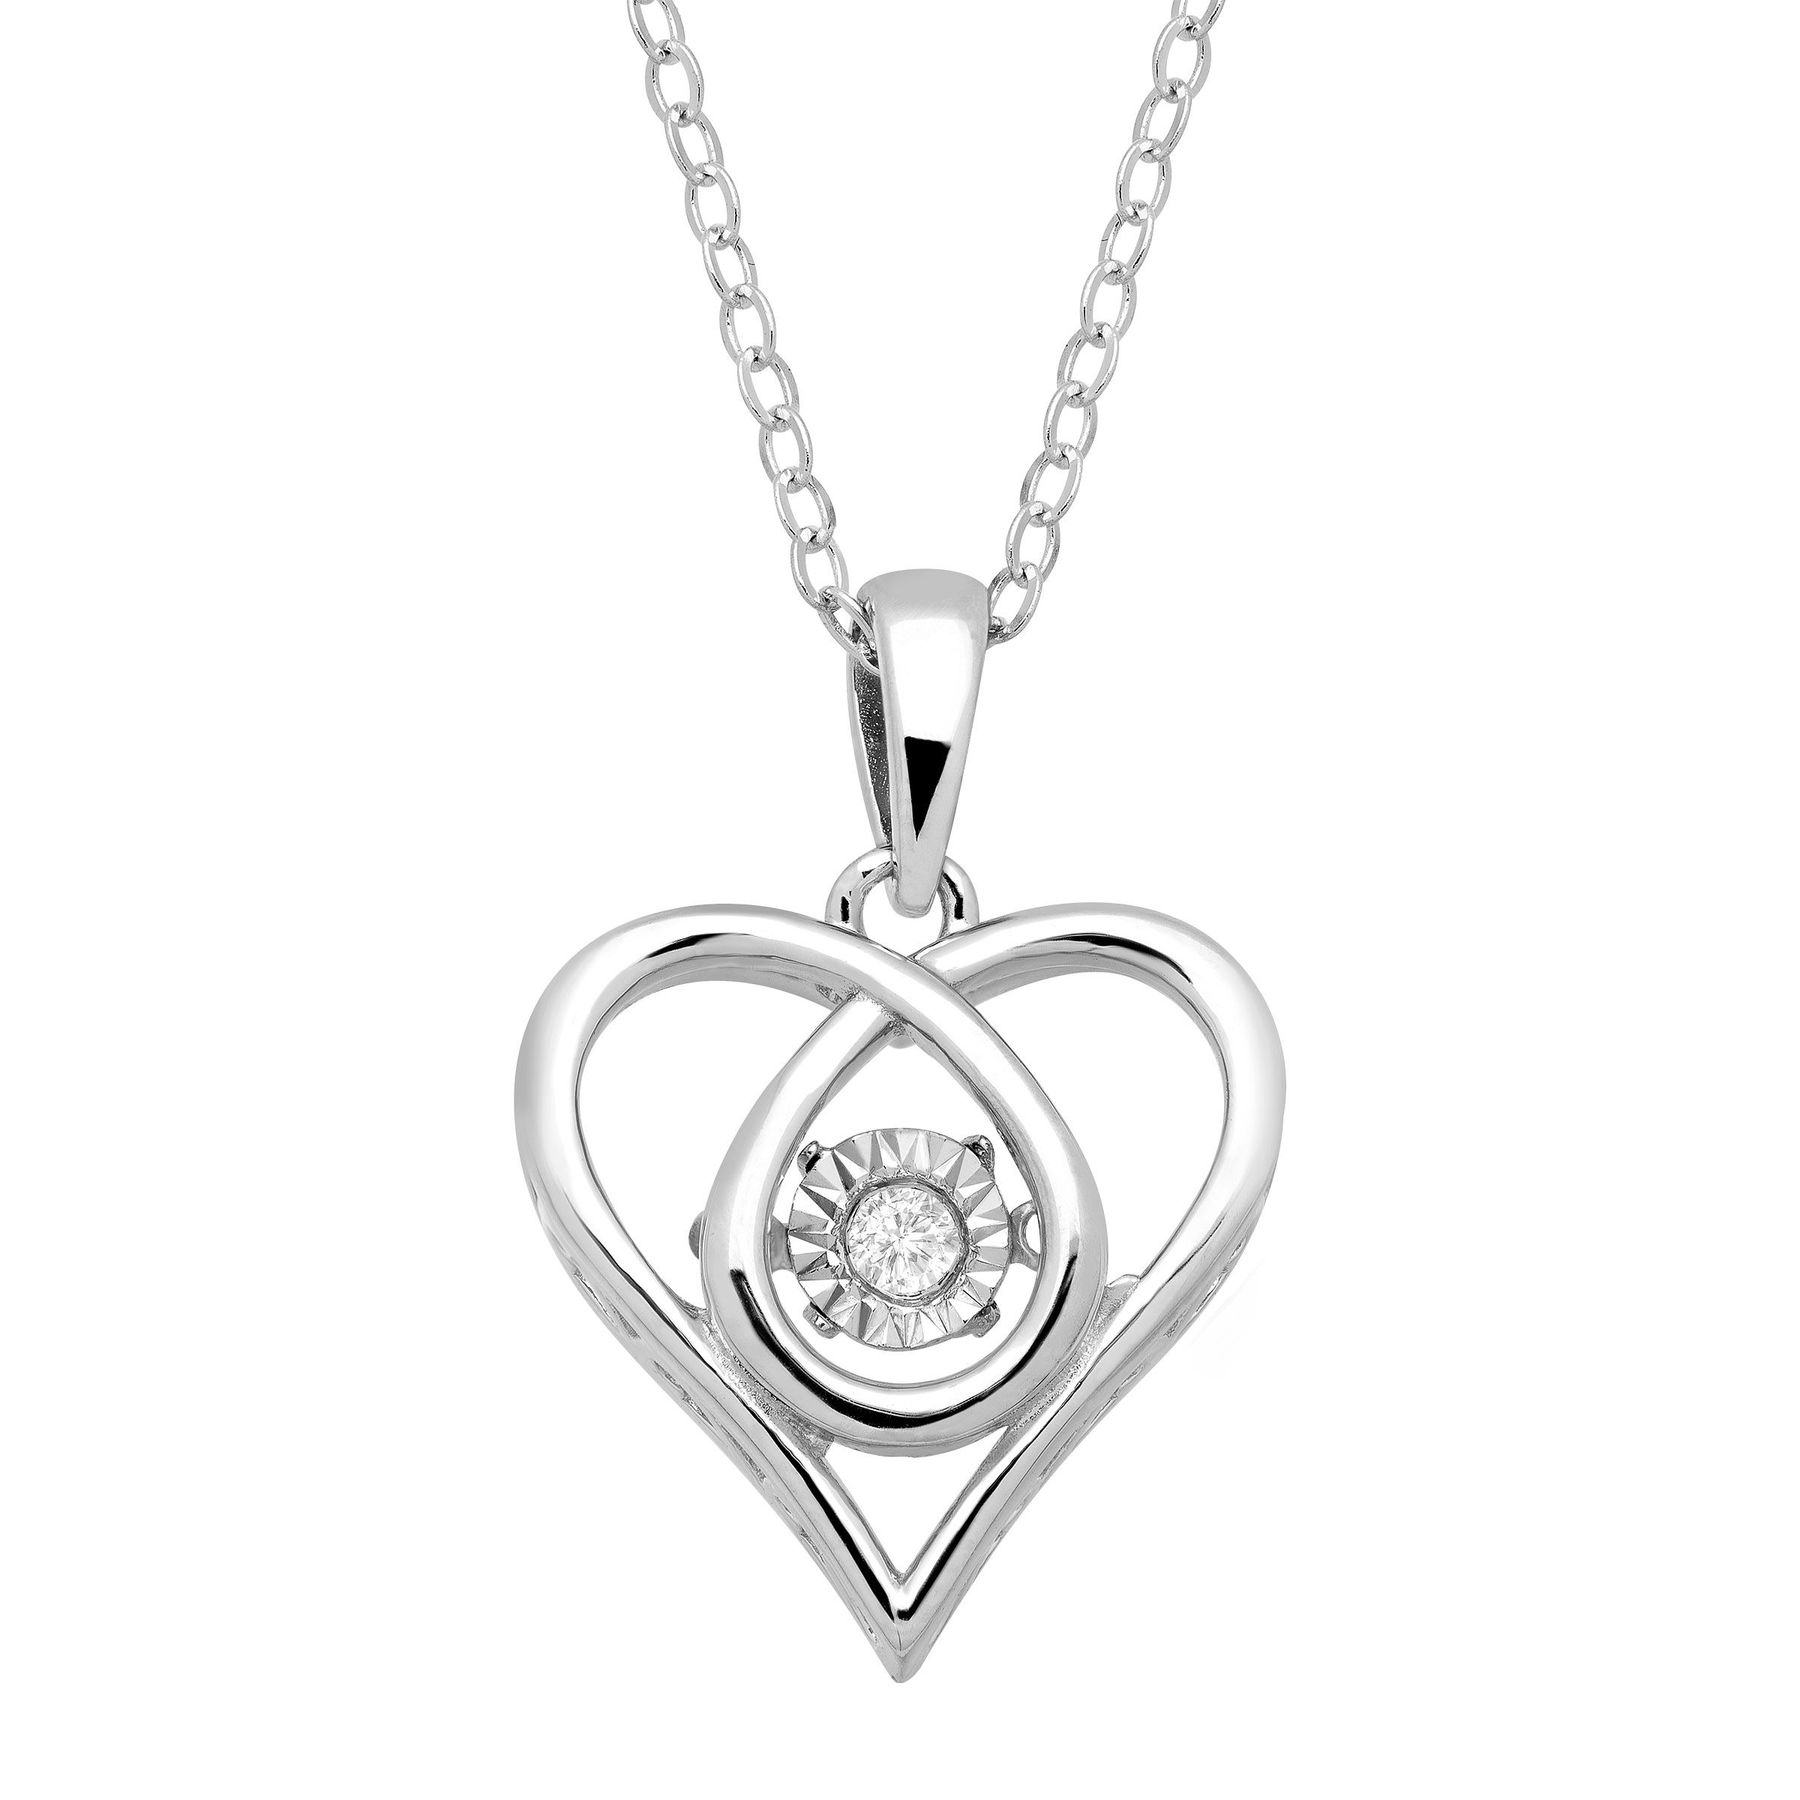 lover heart silver forever sterling dancing pendant store love han online elegant shaped necklace